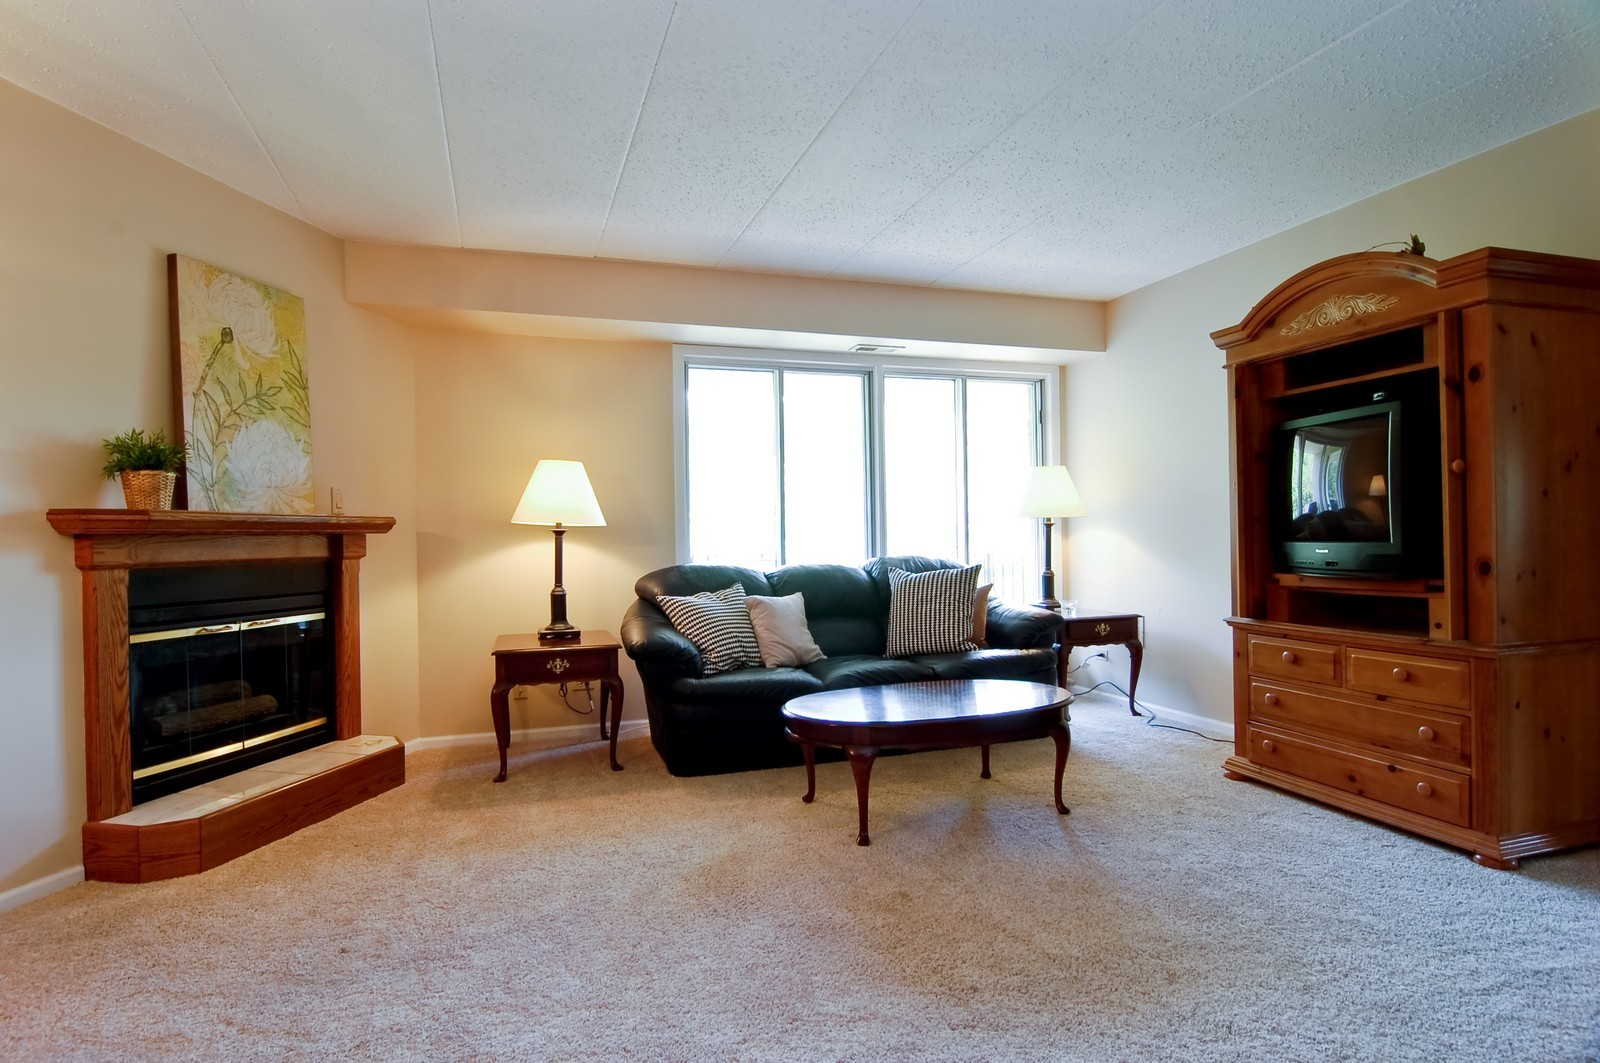 Real Estate Photography - 466 S President, Unit 204, Carol Stream, IL, 60188 - Living Room